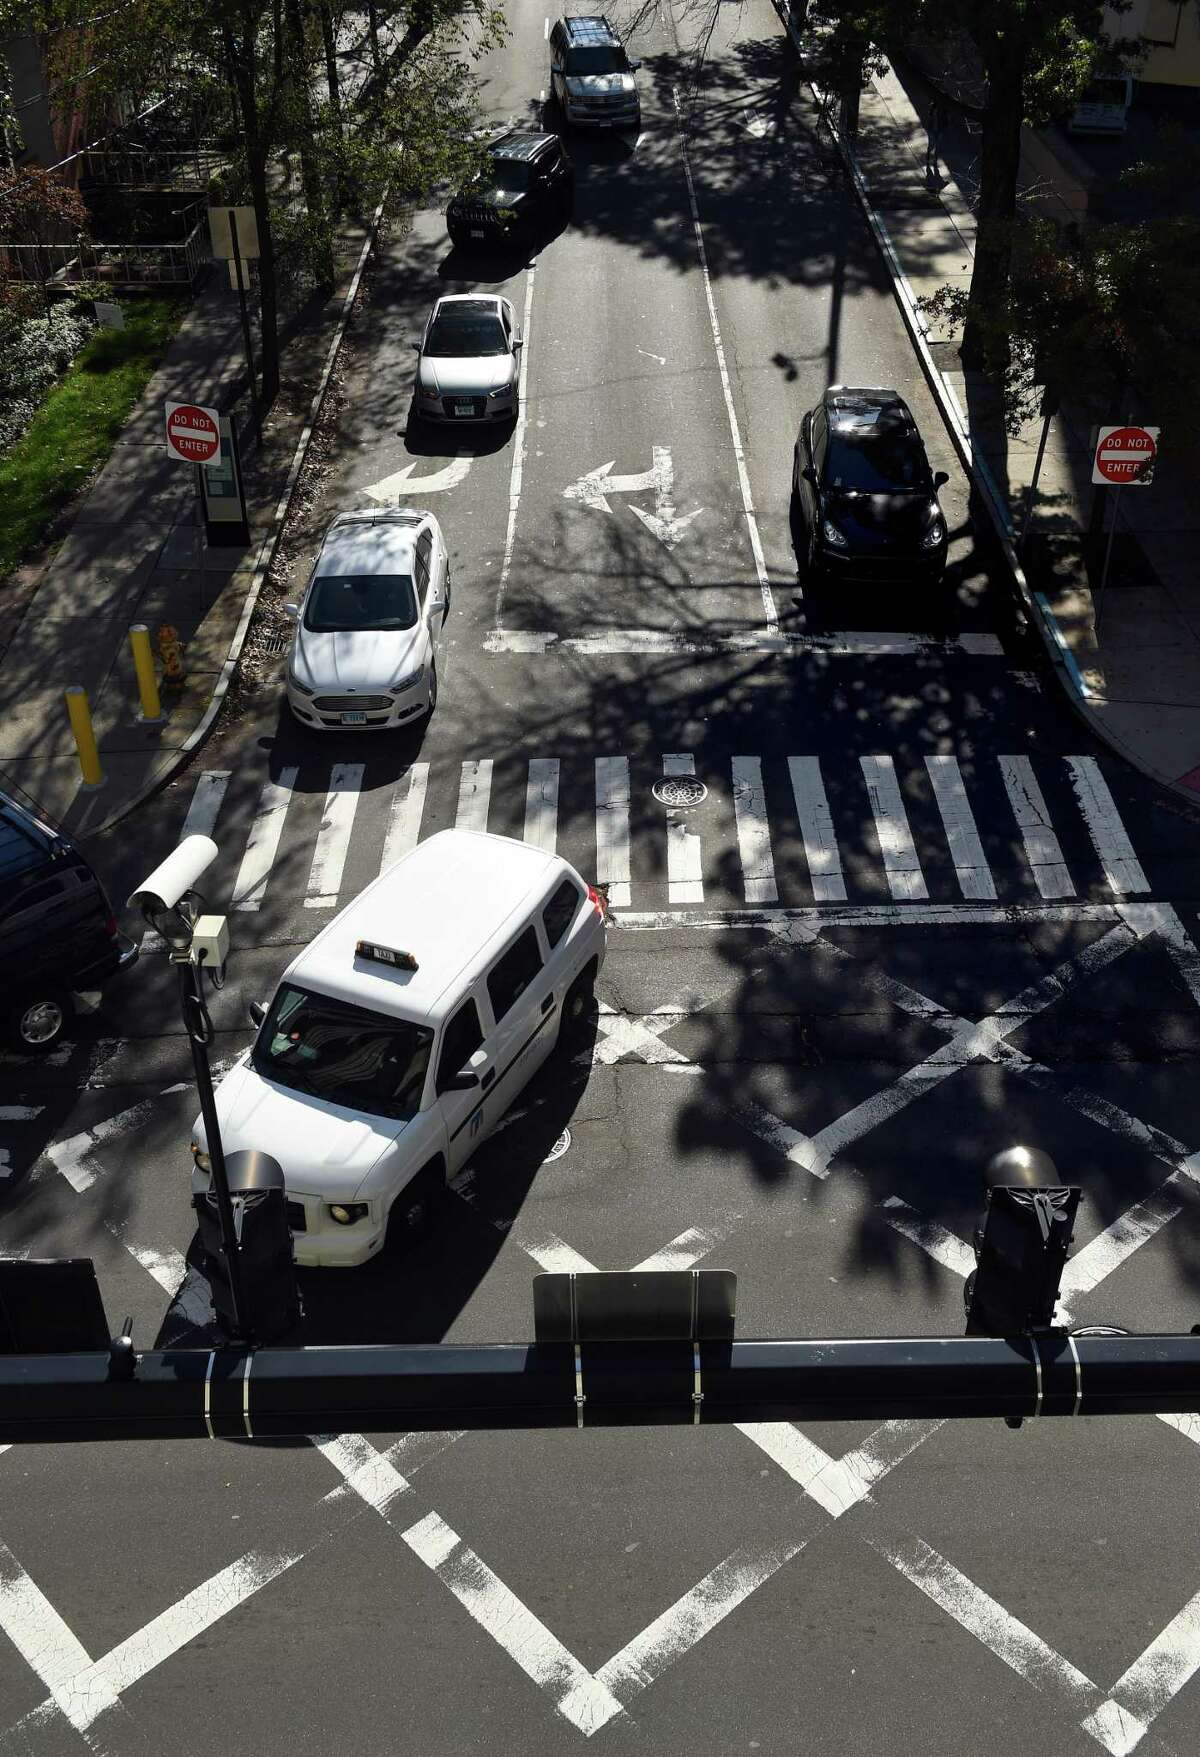 Vehicles travel on York Street in New Haven through the intersection with South Frontage Road on Wednesday.